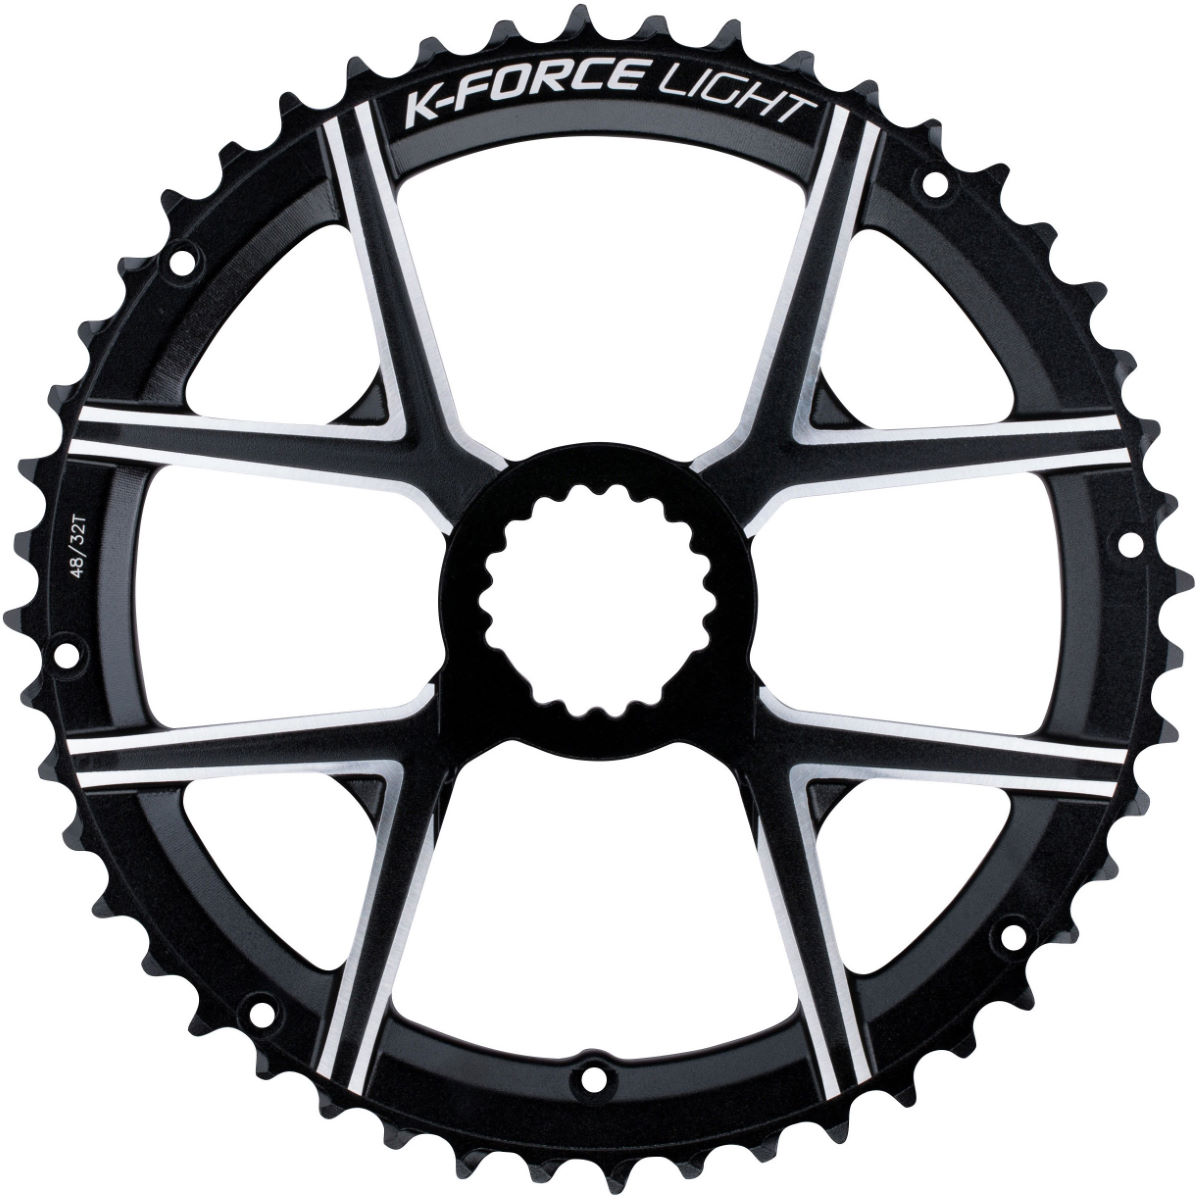 ComprarFSA K-Force Modular Chainring - Platos